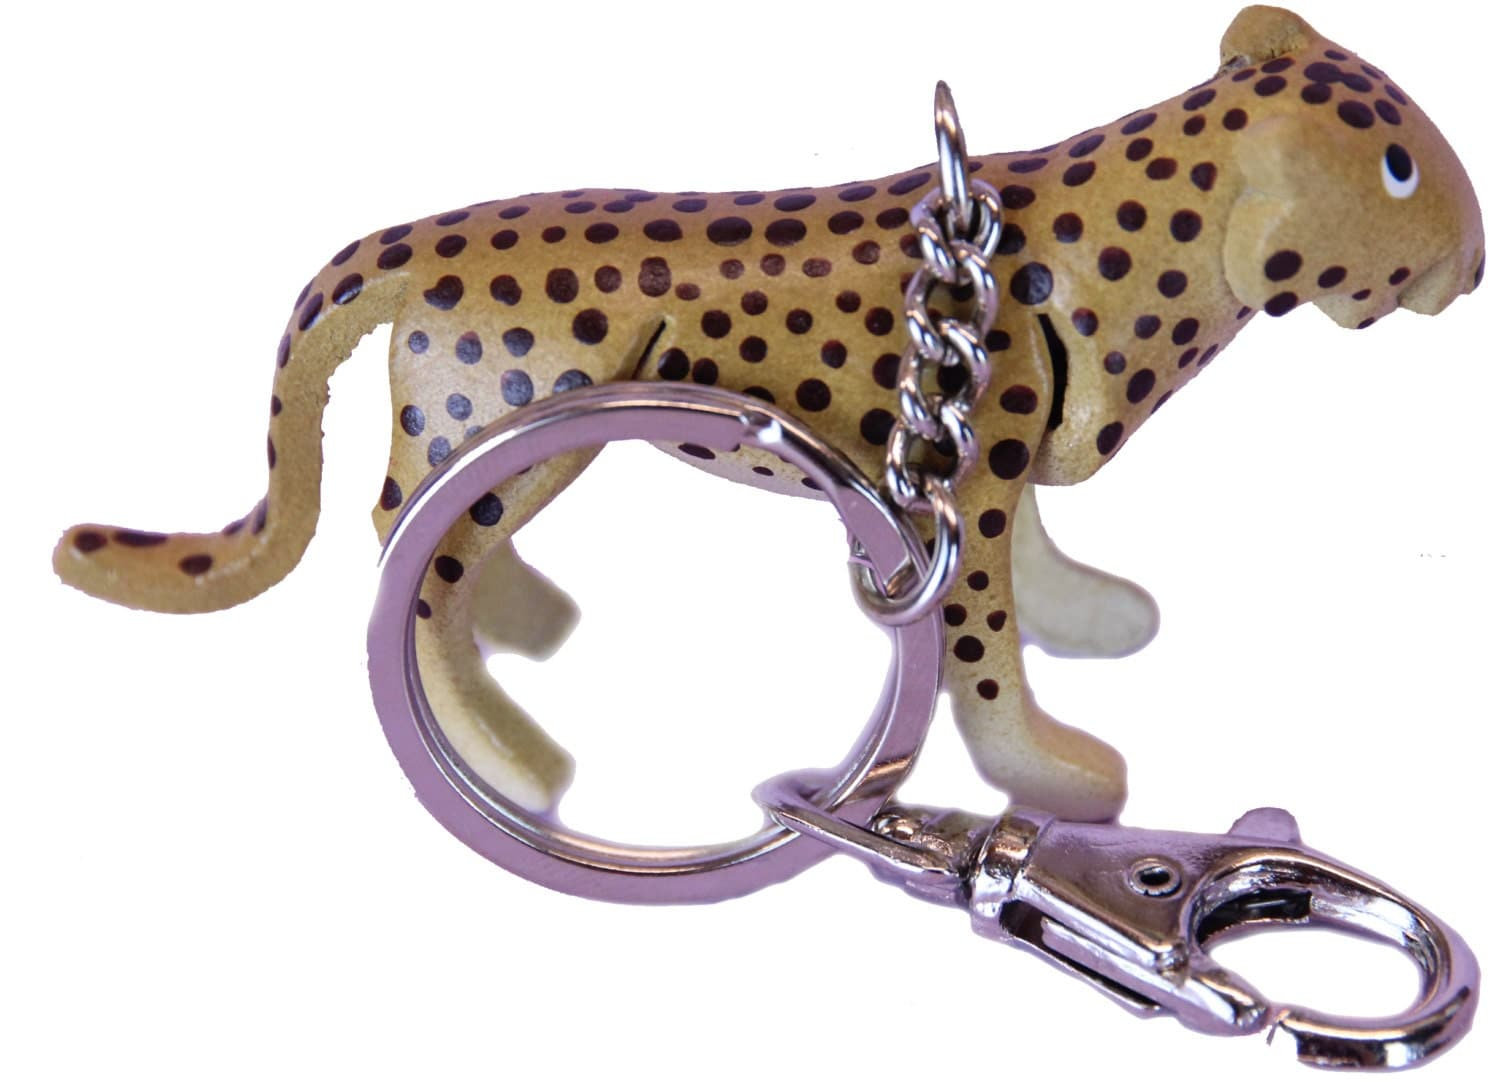 Keychains Lightupcircuitboardkeychain Cheetah Spotted Cat Wild Cats Keychain Fob Leather Charm Keyring Holder